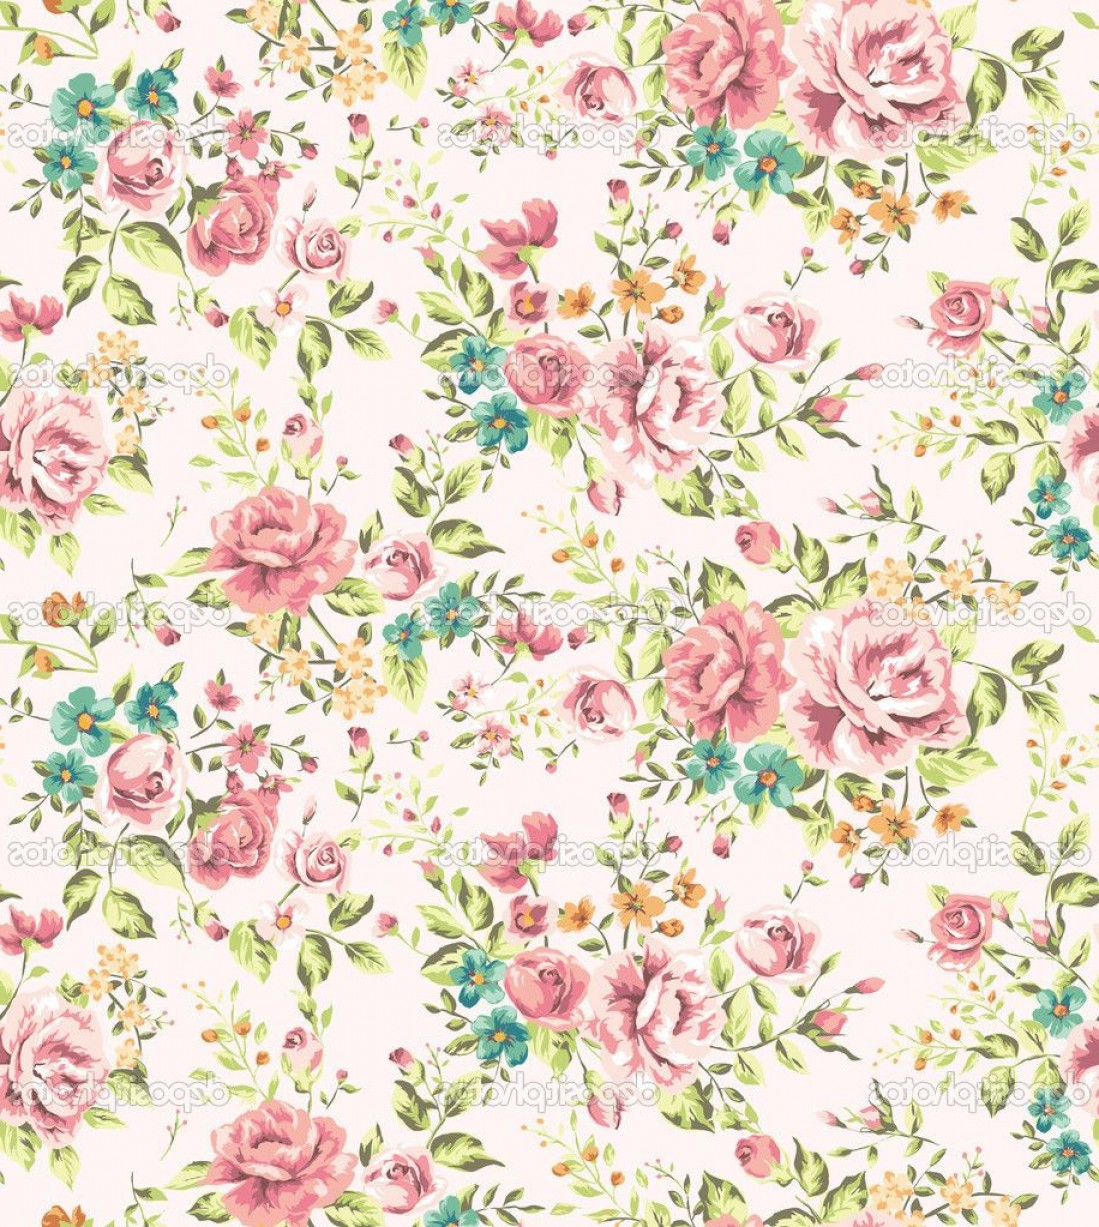 Vintage Flower Desktop Wallpaper Png Free Vintage Flower Desktop